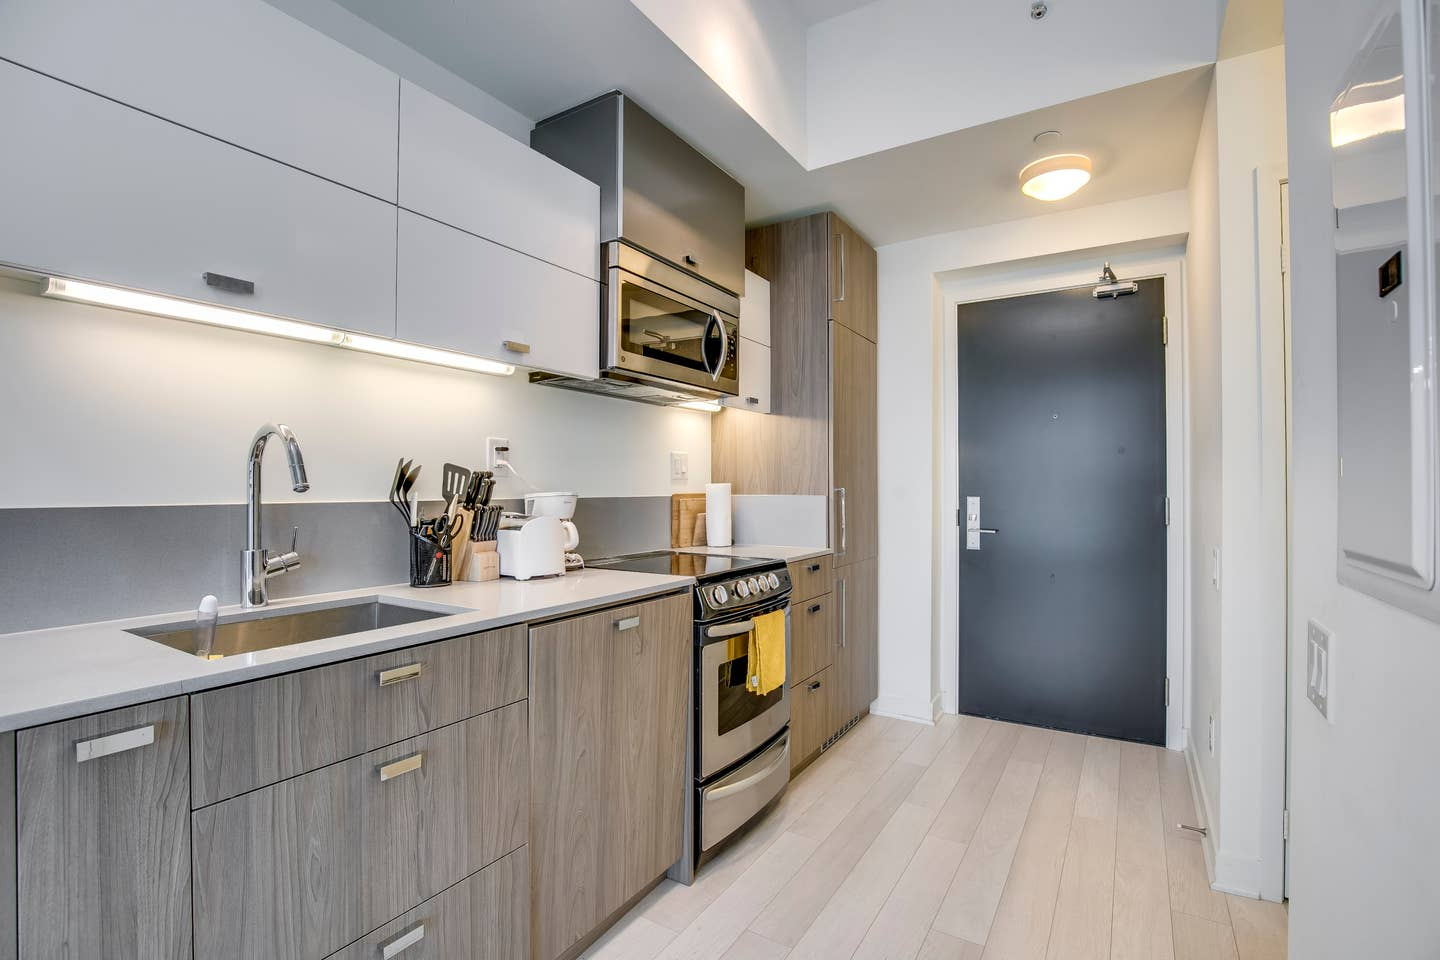 Furnished Rental Condos to Stay at Toronto